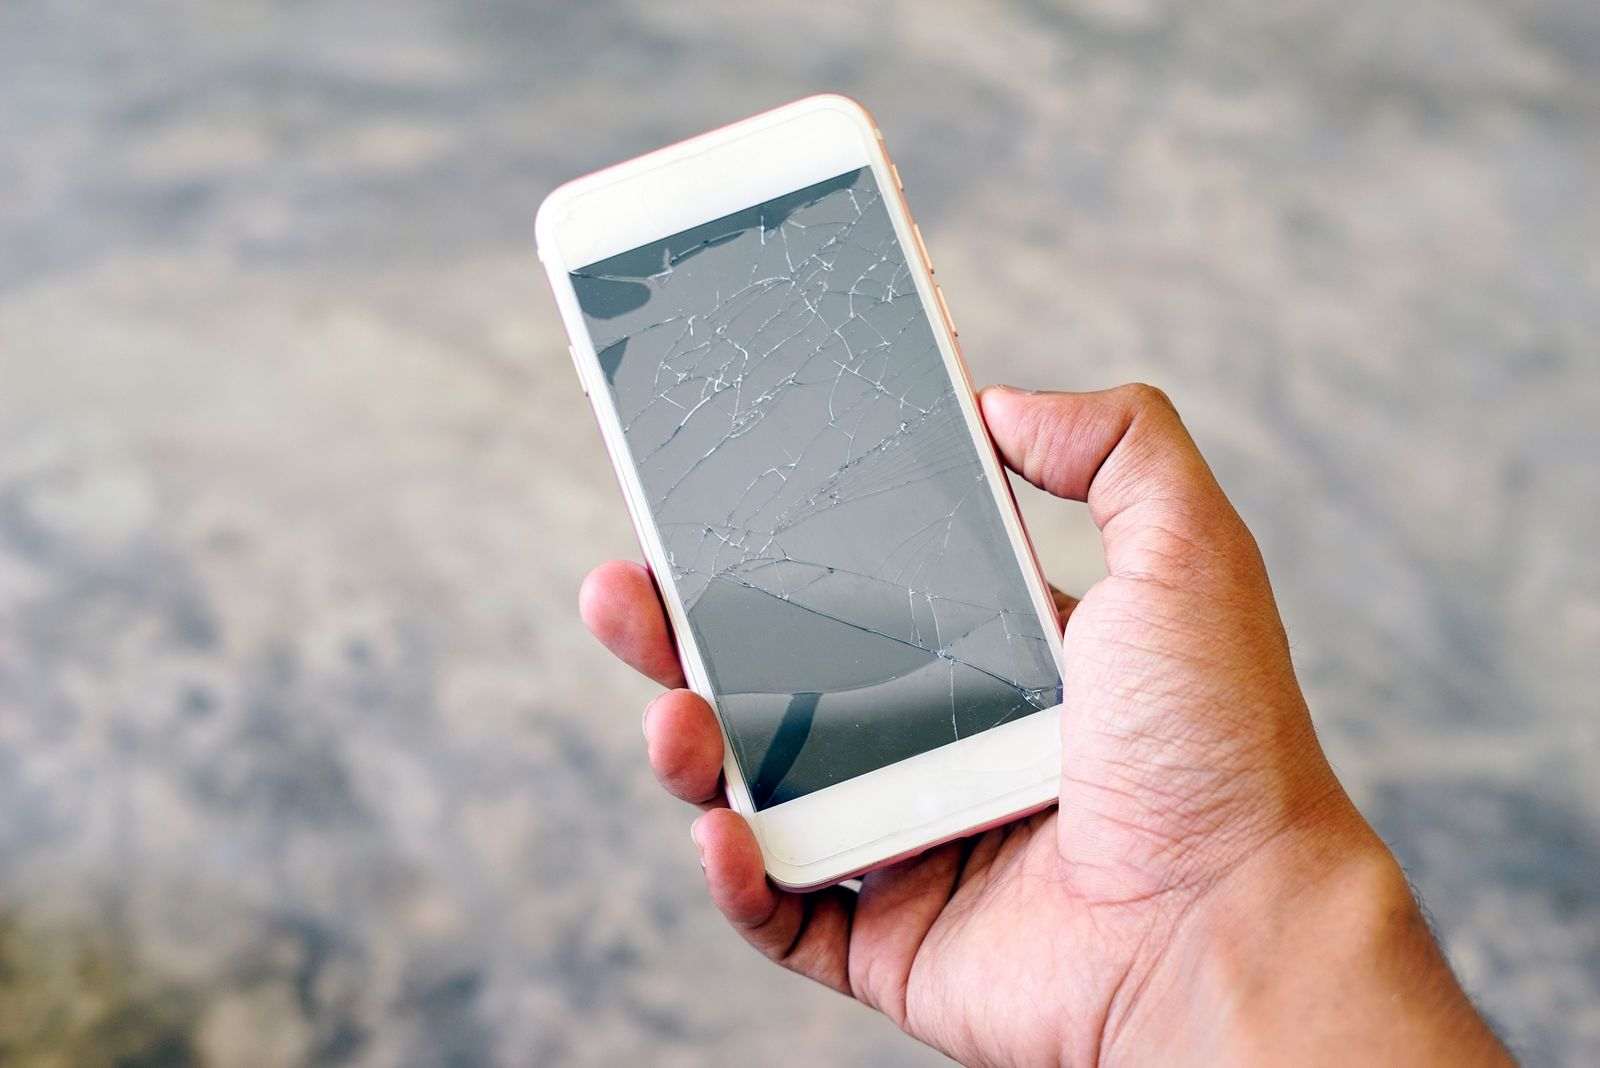 Close-Up Of Hand Holding Damaged Mobile Phone